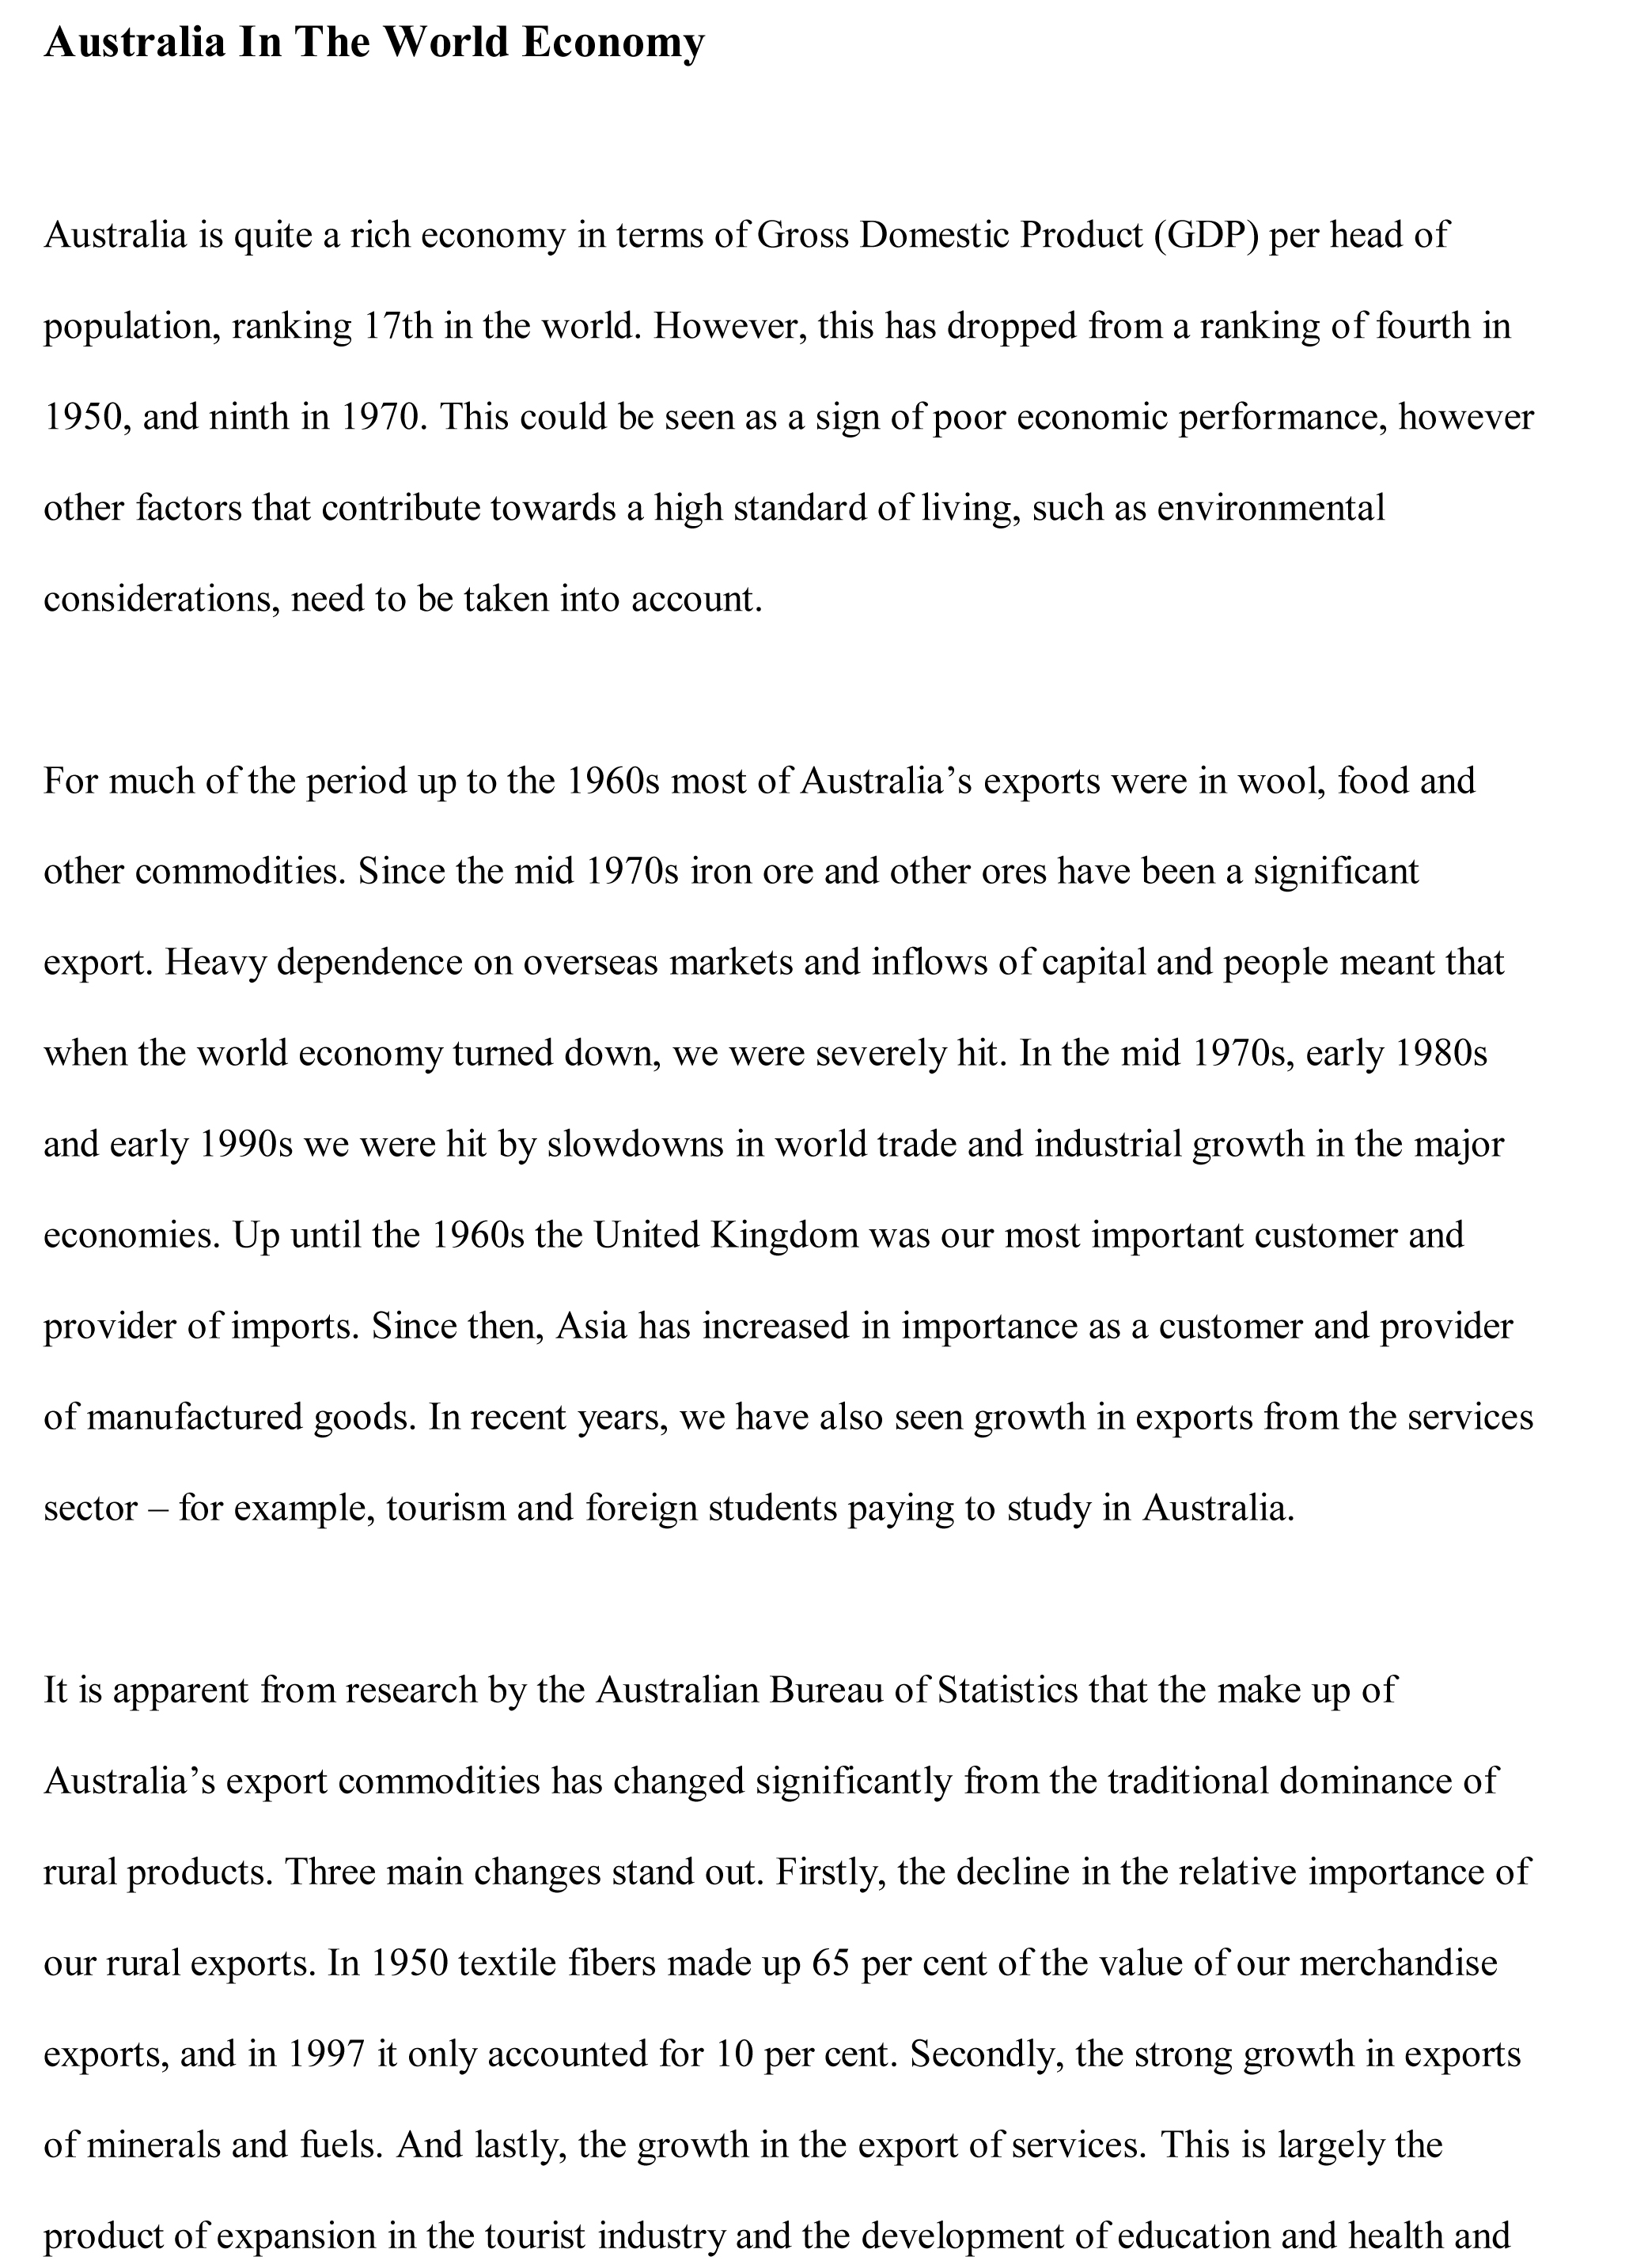 002 Marvelous Essay Example Good Introduction Examples For Essays Template Economics Free Sample Amistad Structure Writing Frightening Discount Code Uk English Full